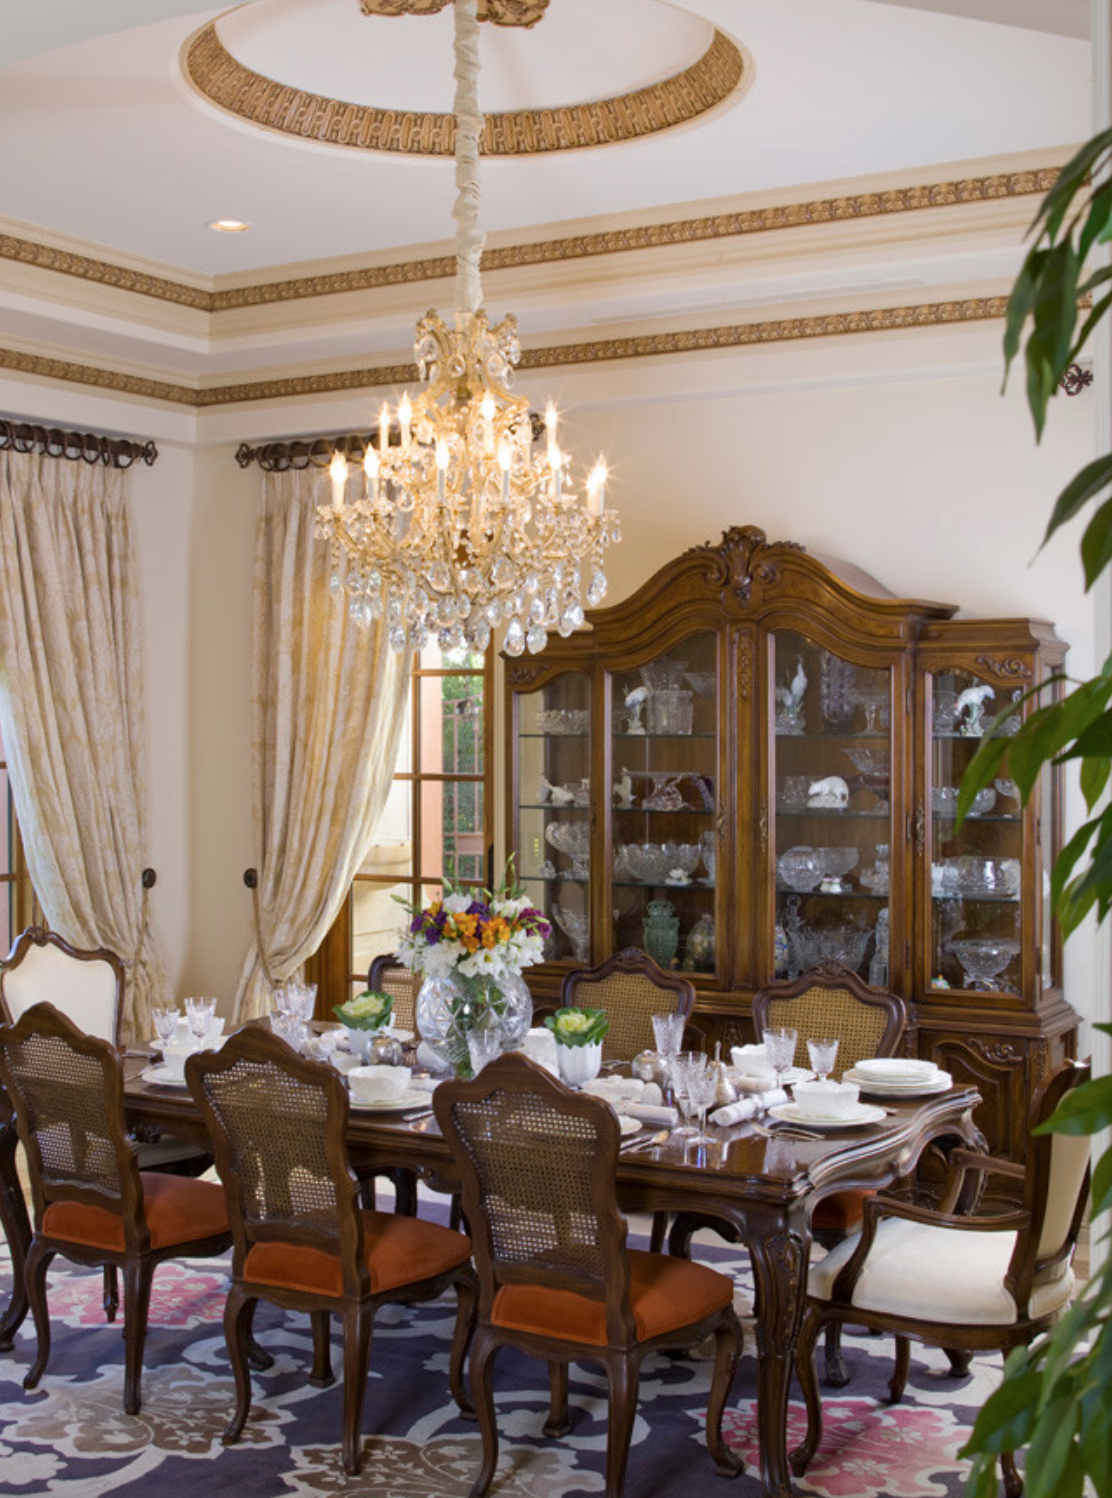 Ornate Traditional Dining Room with Chandelier